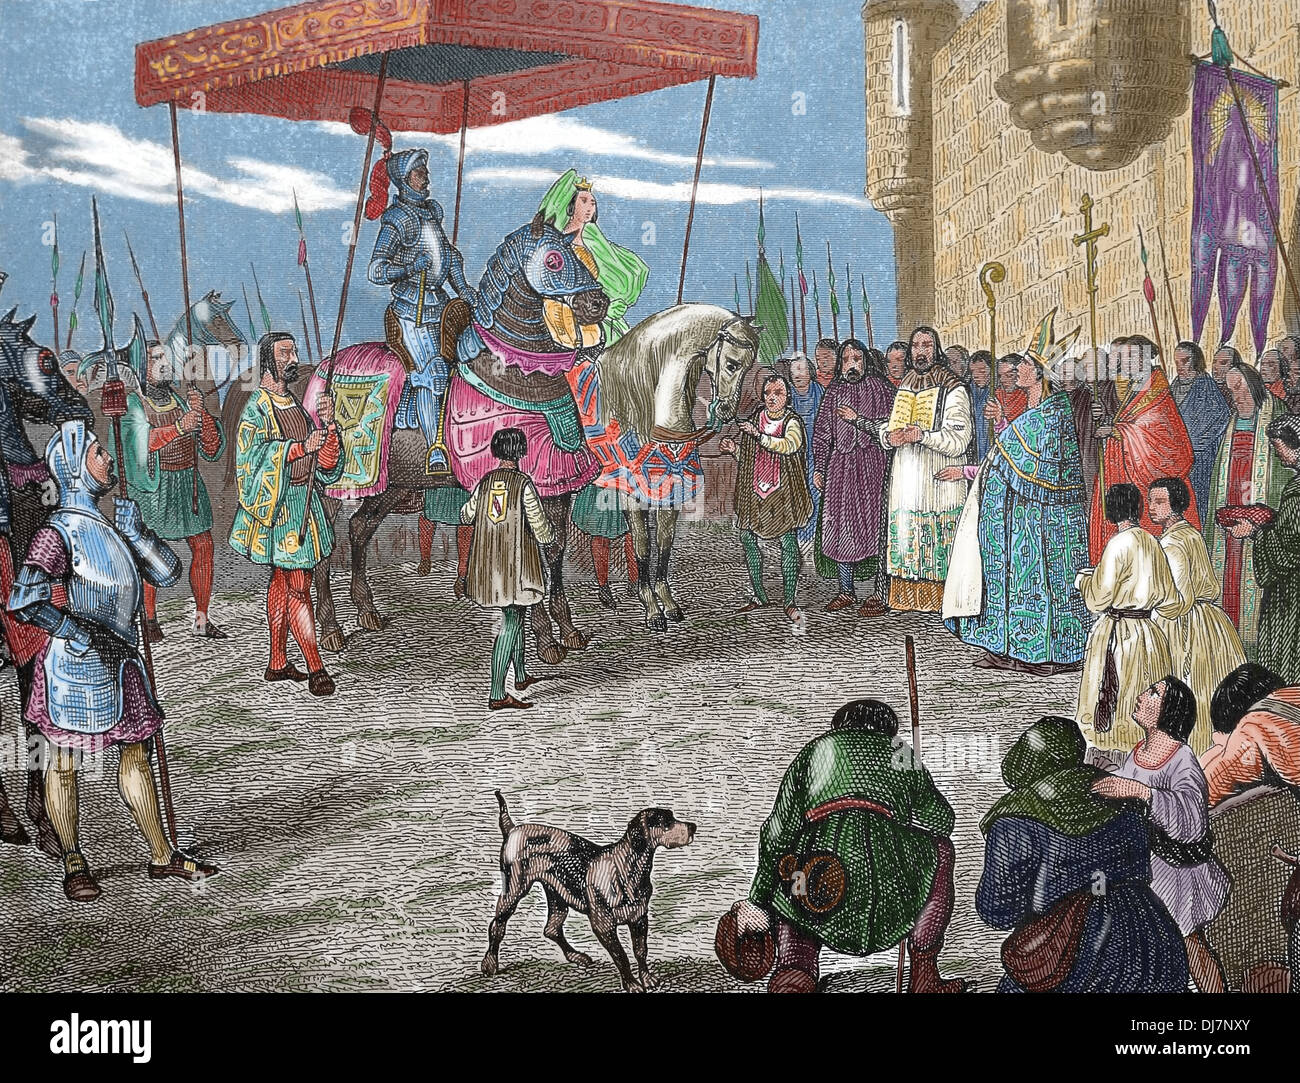 History. Middle Ages. Vassal paying homage to their liege lord. Engraving. (Later colouration) - Stock Image